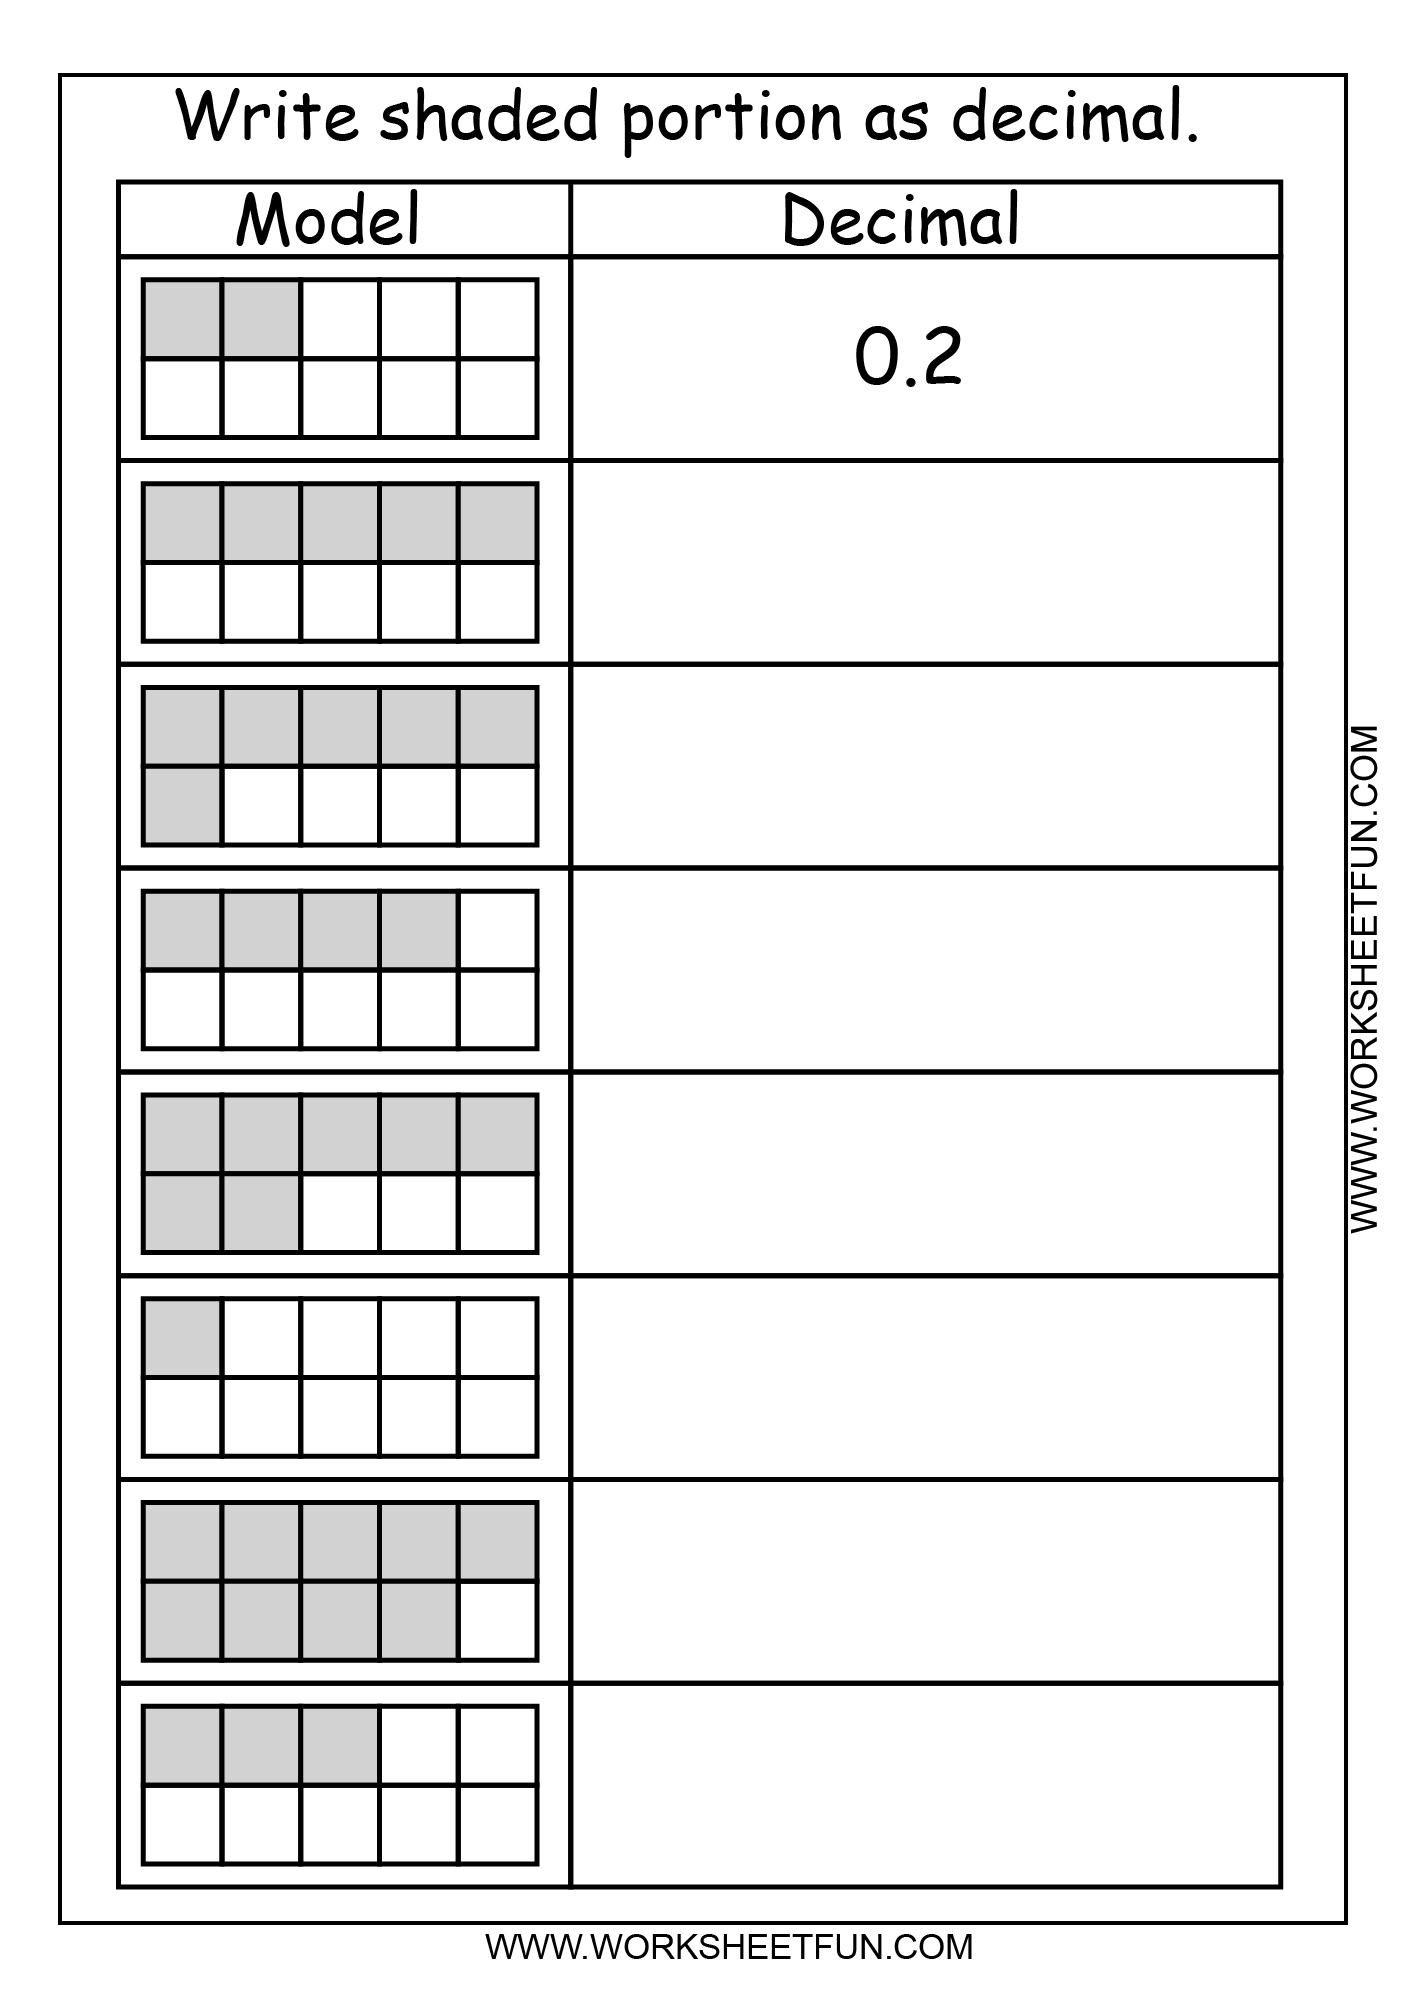 Decimal Model Tenths 2 Worksheets Free Printable